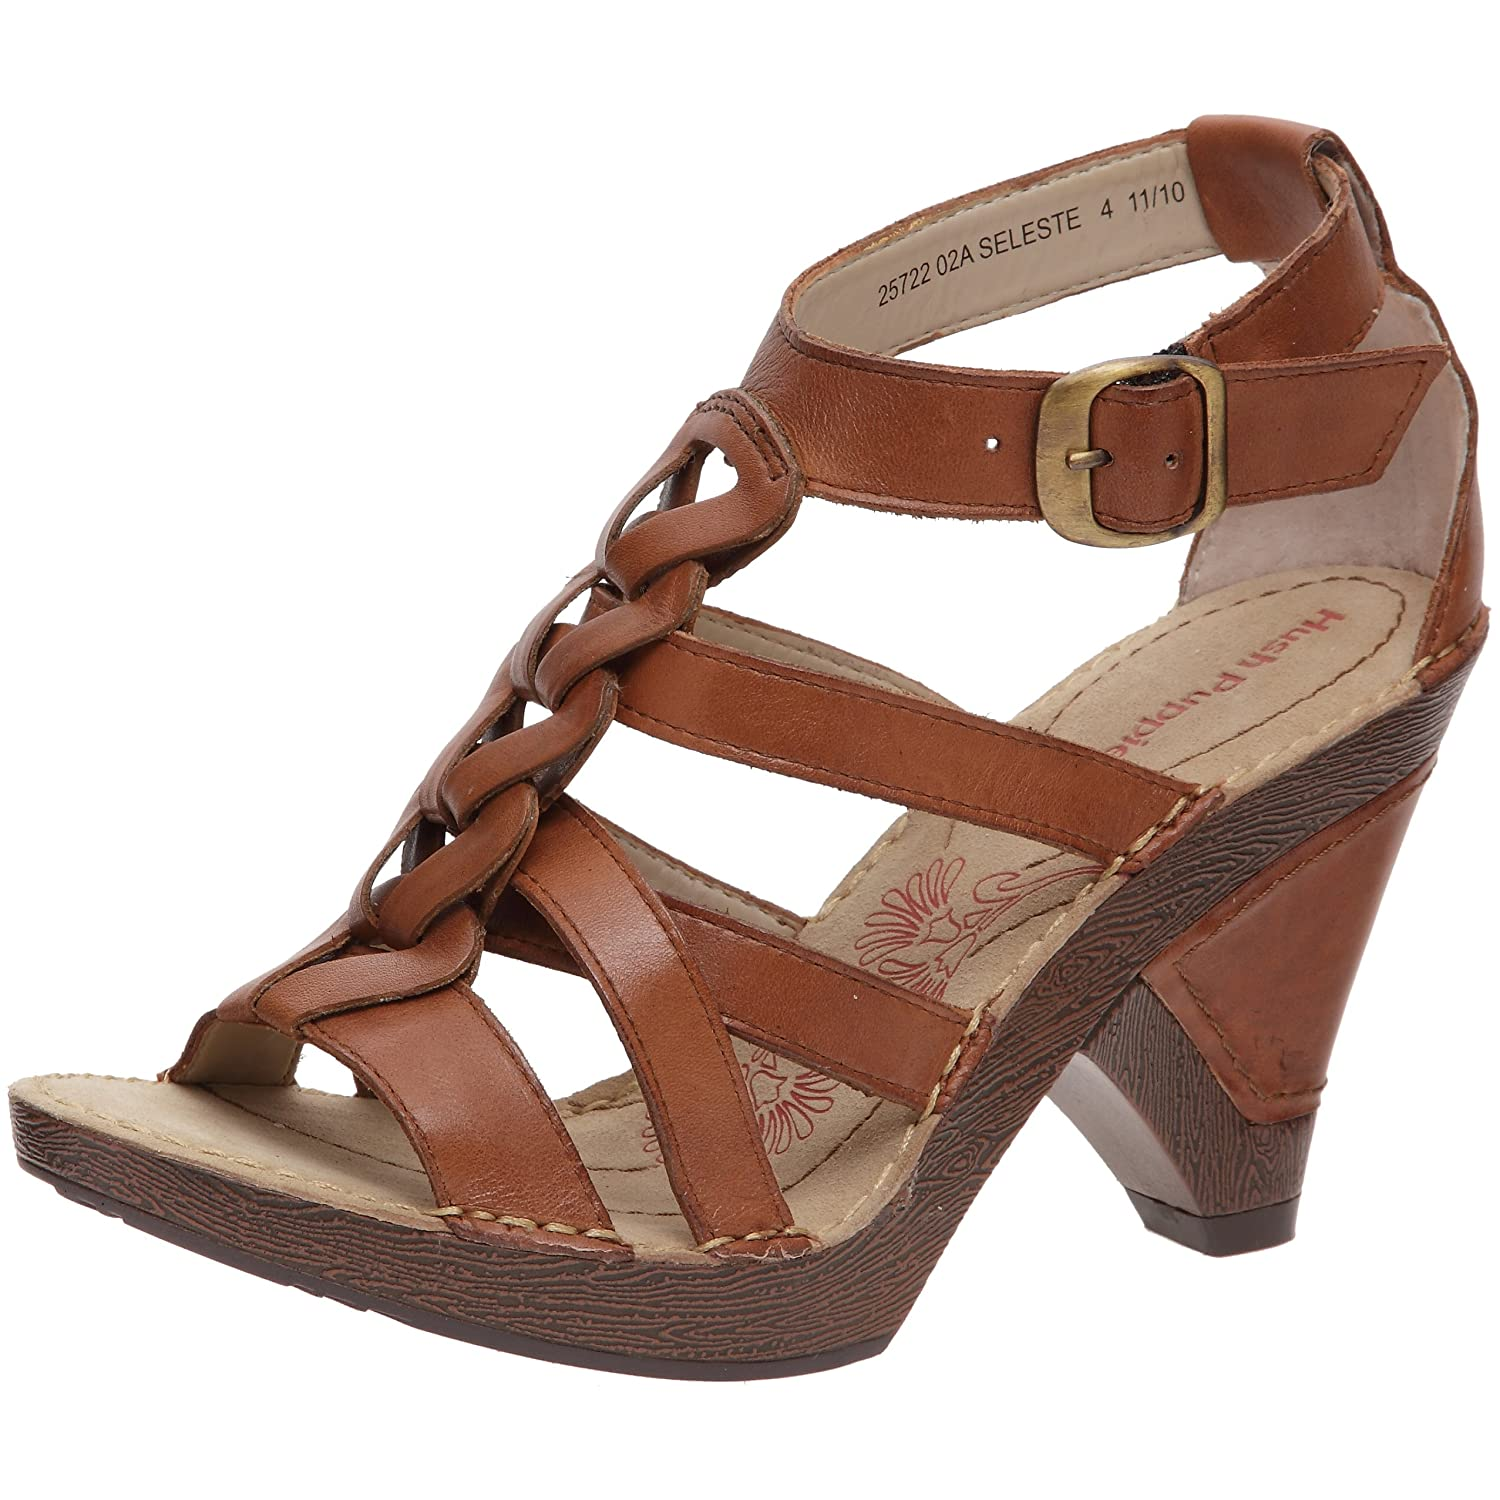 840ebf37520 Hush Puppies Women s Seleste Sandal Tan UK 7  Amazon.co.uk  Shoes   Bags